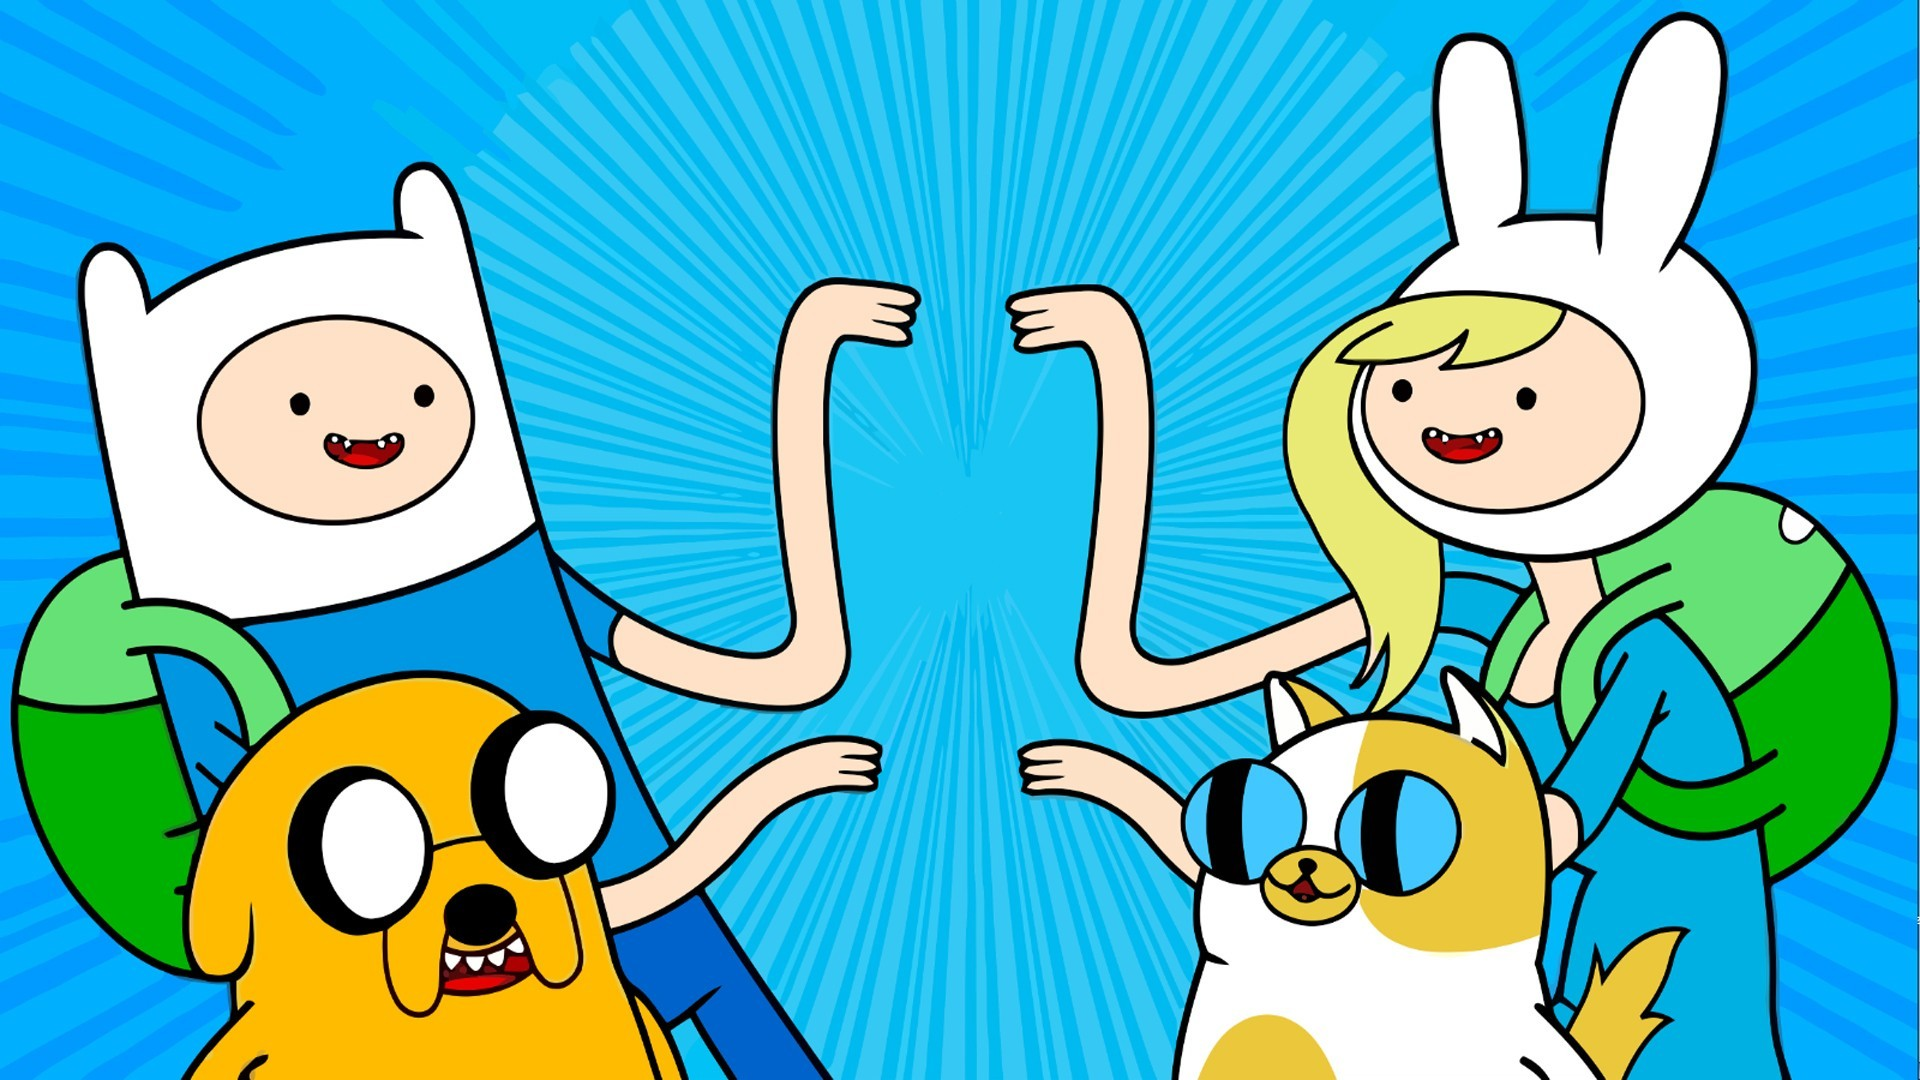 Adventure time hd wallpaper wallpaper high definition high adventure time hd wallpaper thecheapjerseys Choice Image